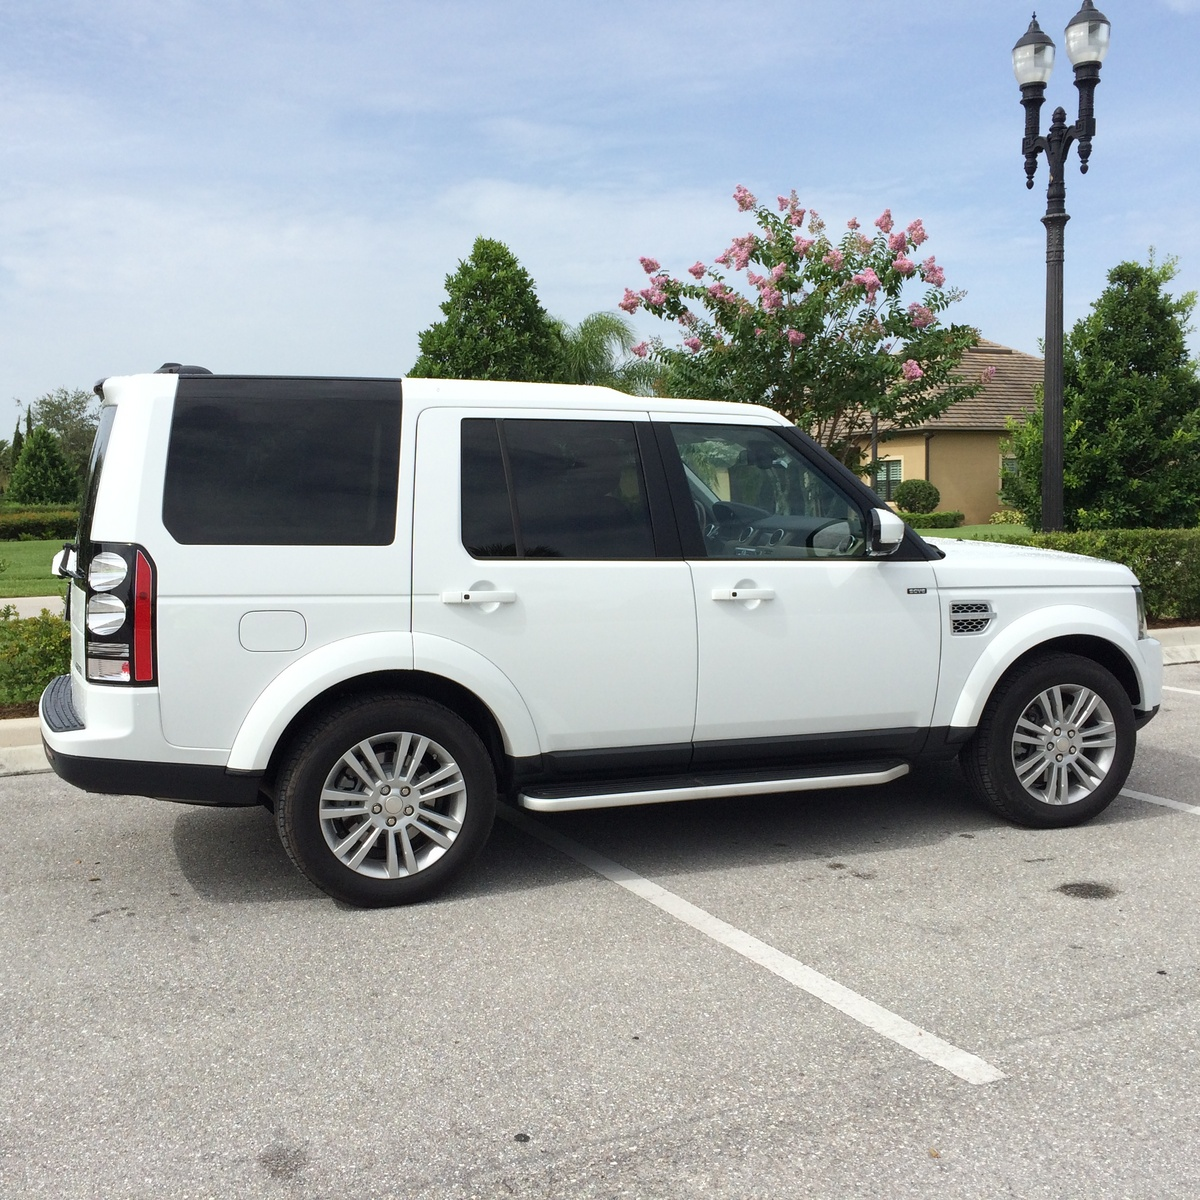 New 2014 / 2015 Land Rover LR4 For Sale